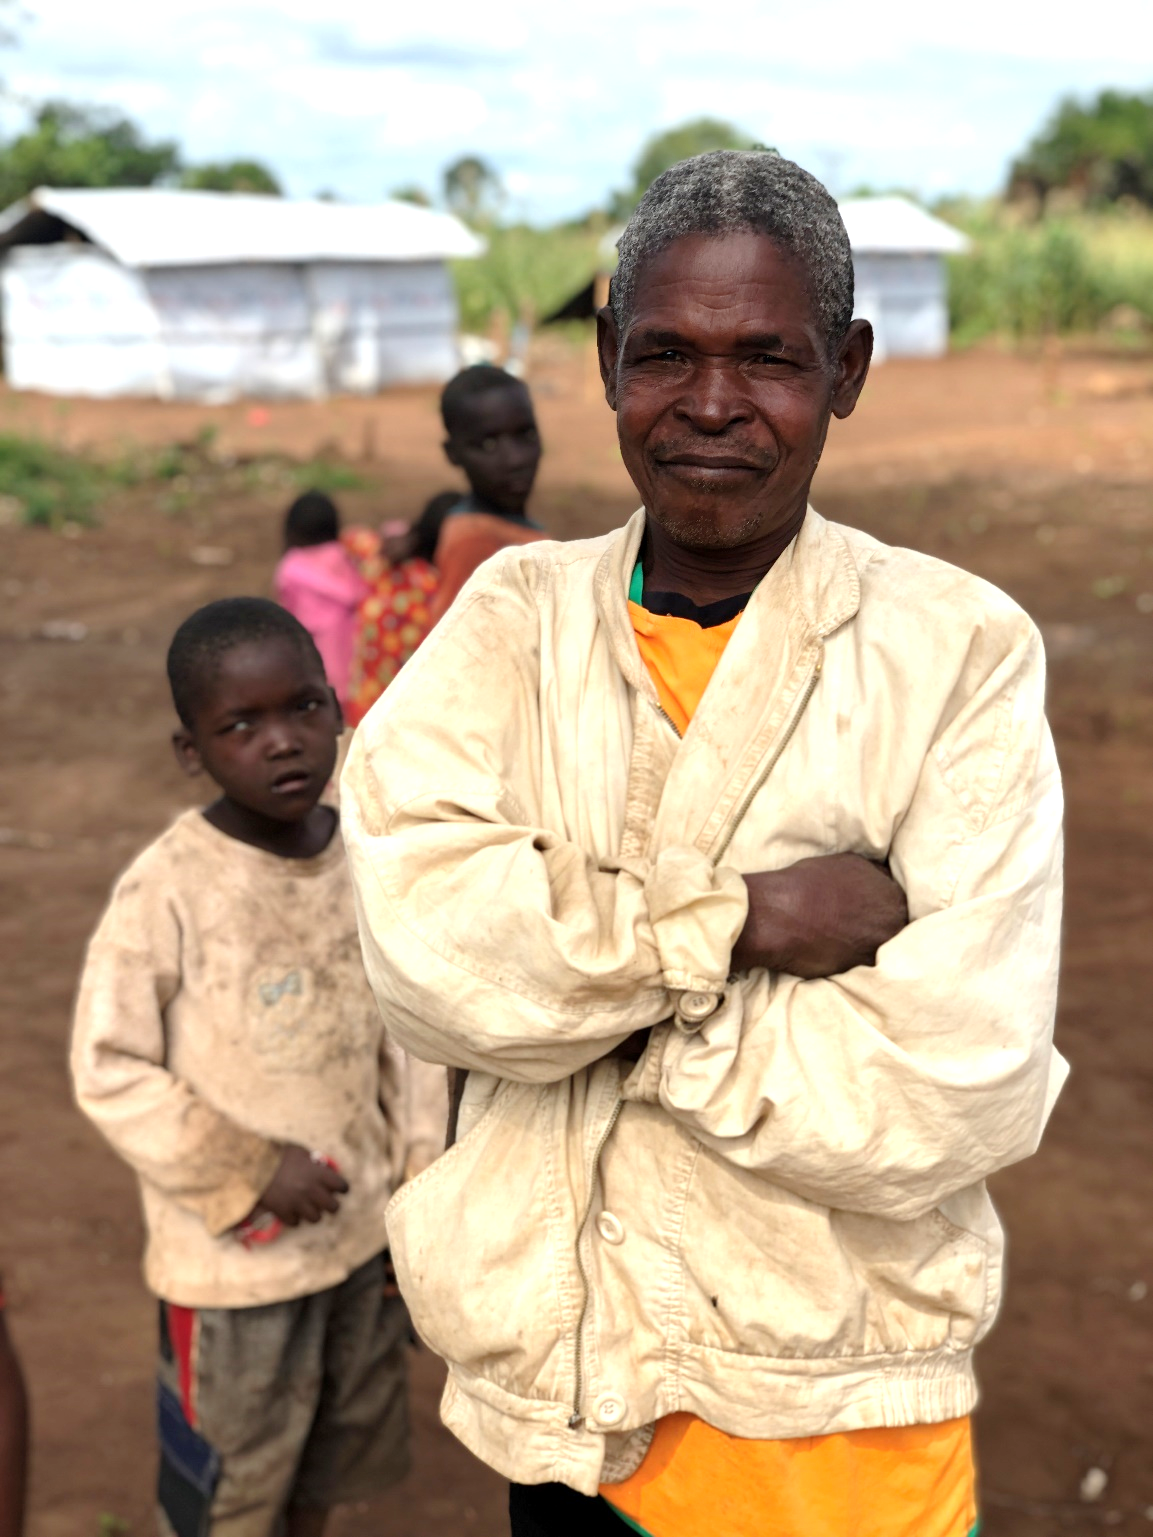 John (name has been changed for confidentiality) lost his farm during the floods caused by Cyclone Idai and now lives in a tent far from his original home in Mozambique.